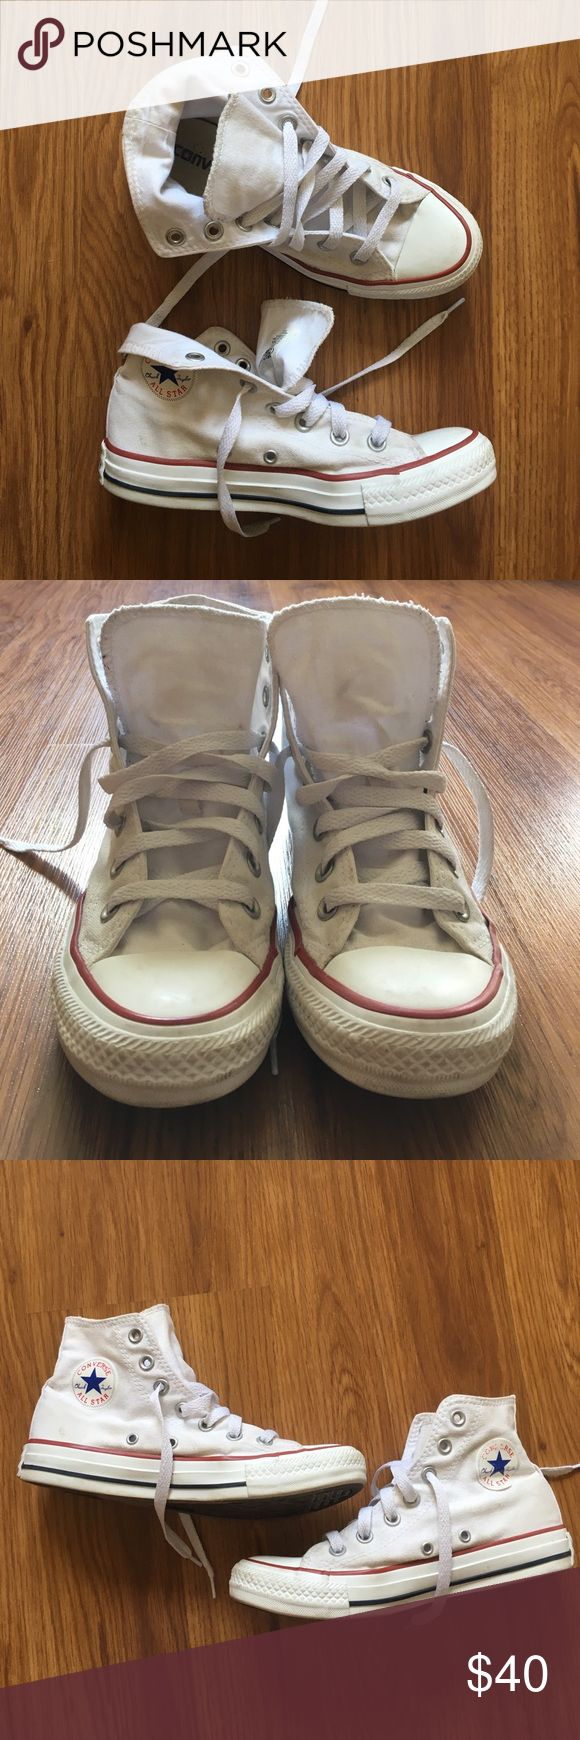 ✨FLASH SALE✨Converse High Top Chuck Taylors Pre loved high tops in good condition. They have some signs of wear but have been cleaned up and are bright white! Minor discoloring on the canvass and some signs of wear on the rubber (logo rubbed) the logo is peeling up a bit as well. All signs of wear are pictured! These shoes are a mens 6 which will fit a womans 5.5-6! Converse Shoes